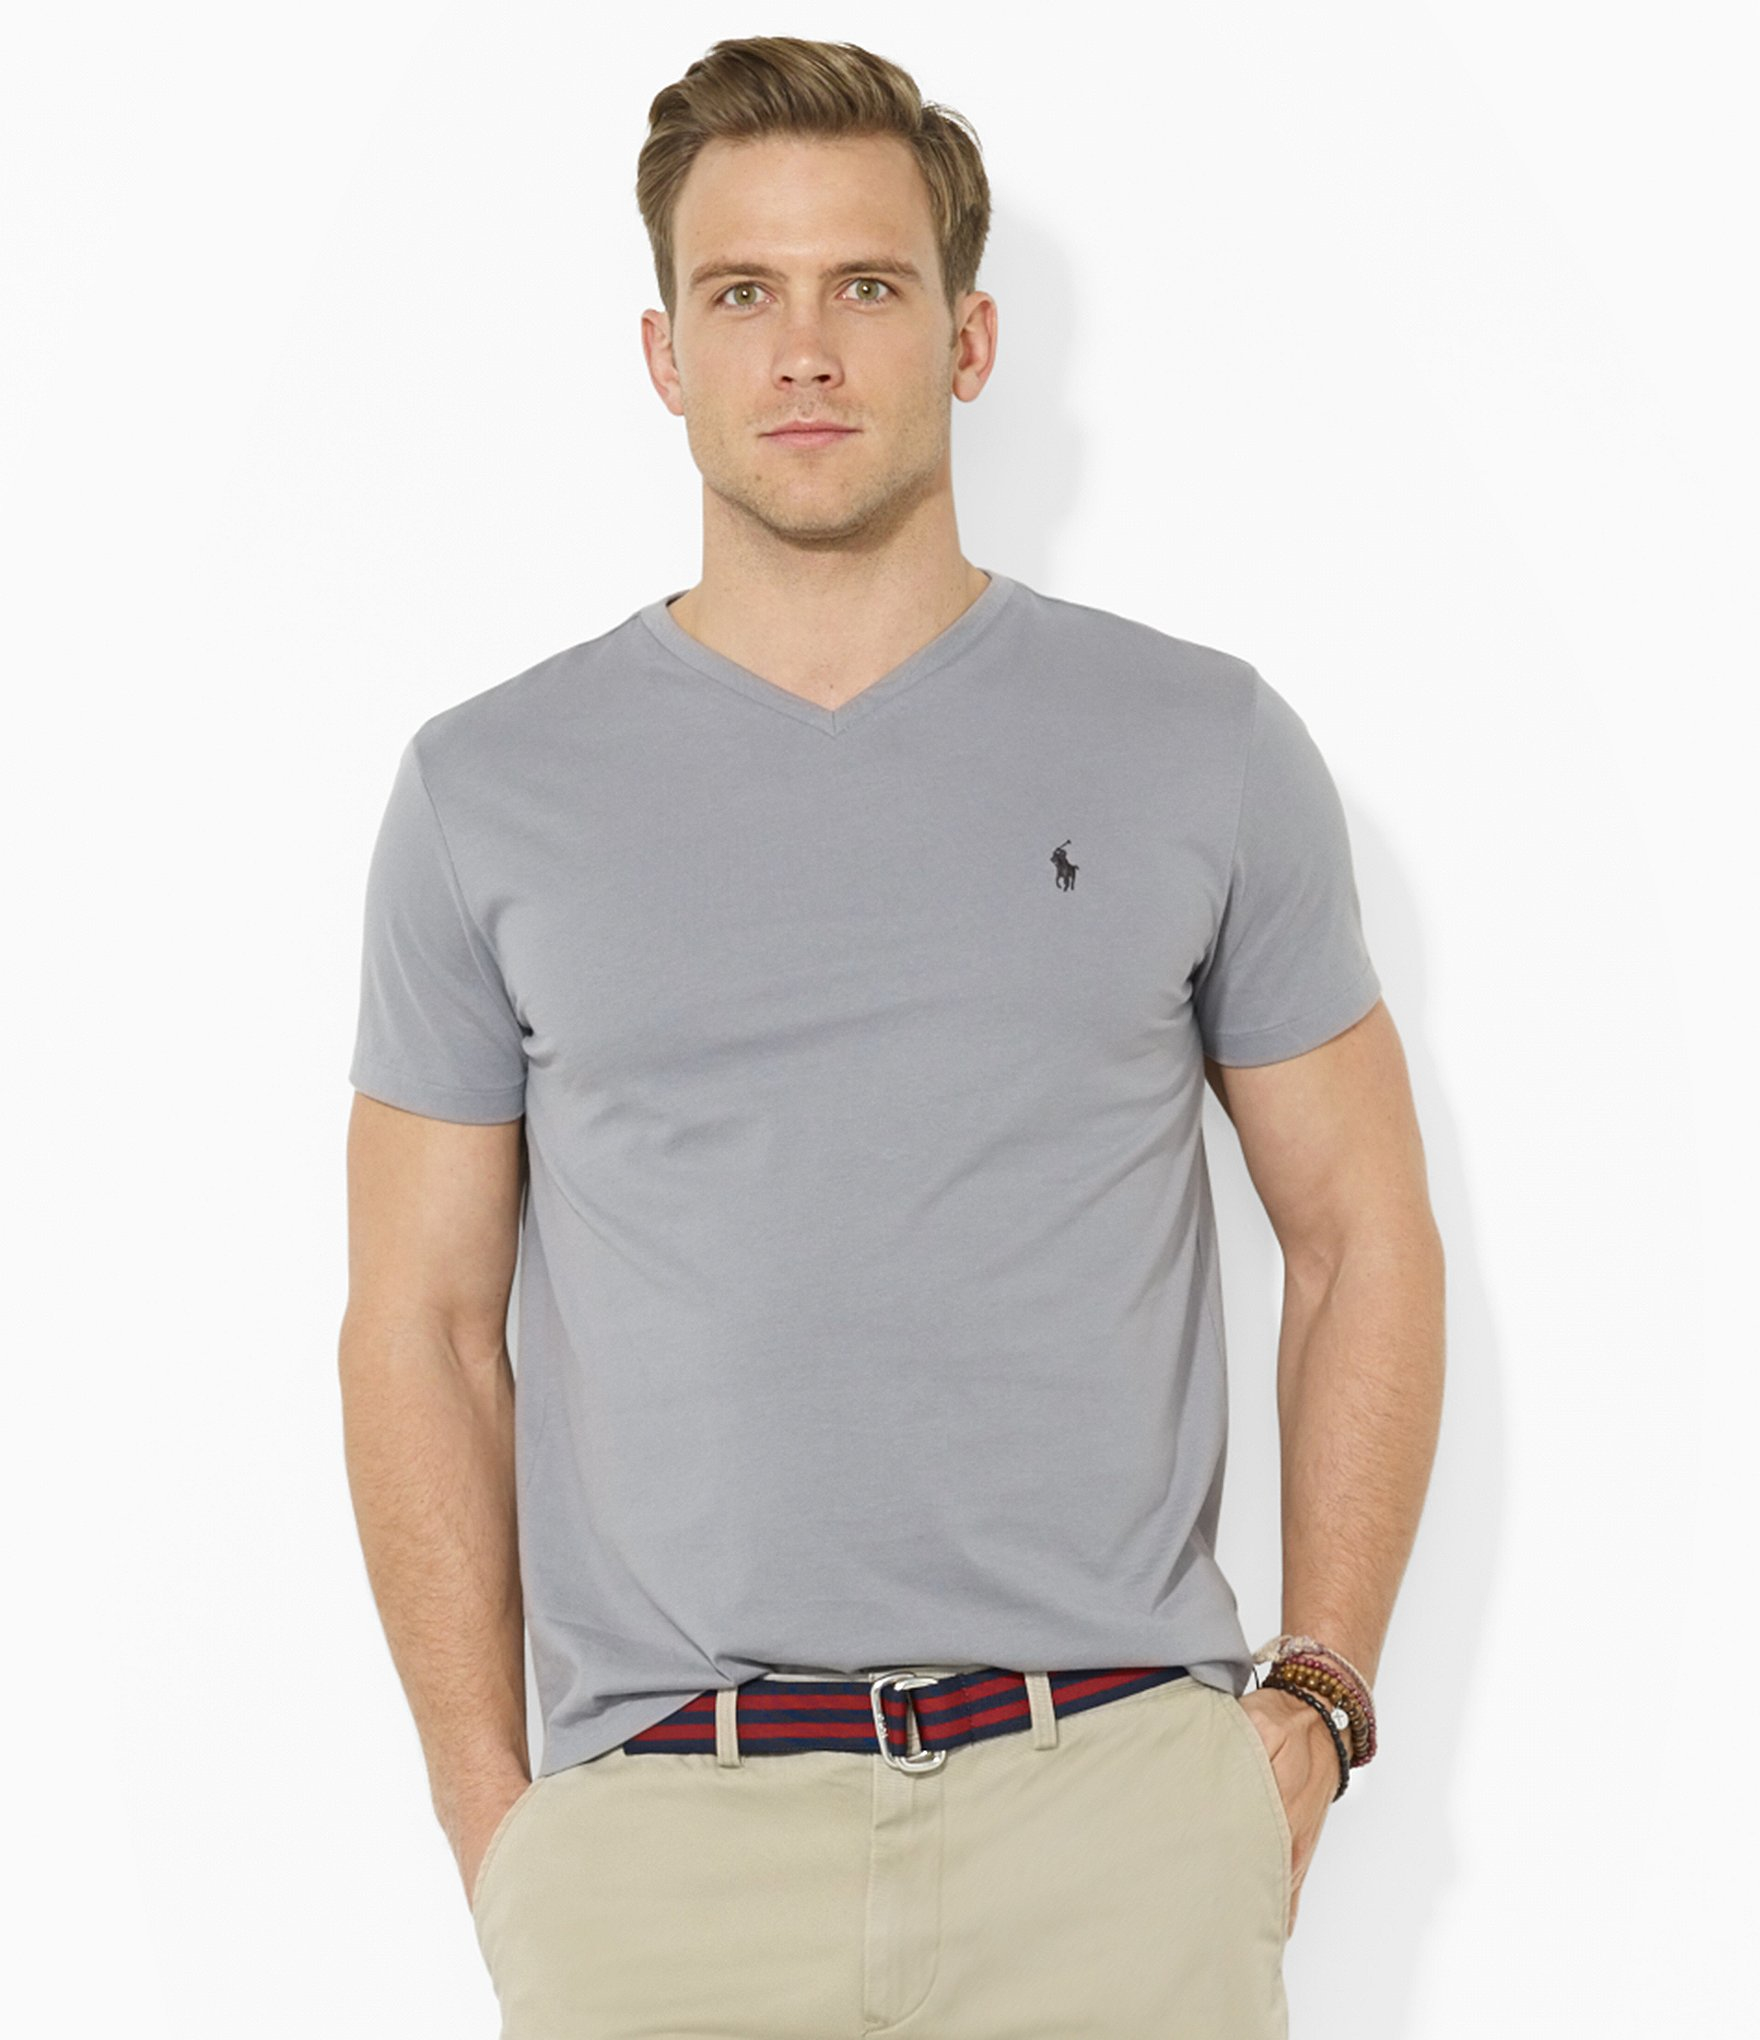 Grey v neck tee outlet polo sell ralph lauren shirtspolo t for What stores sell polo shirts